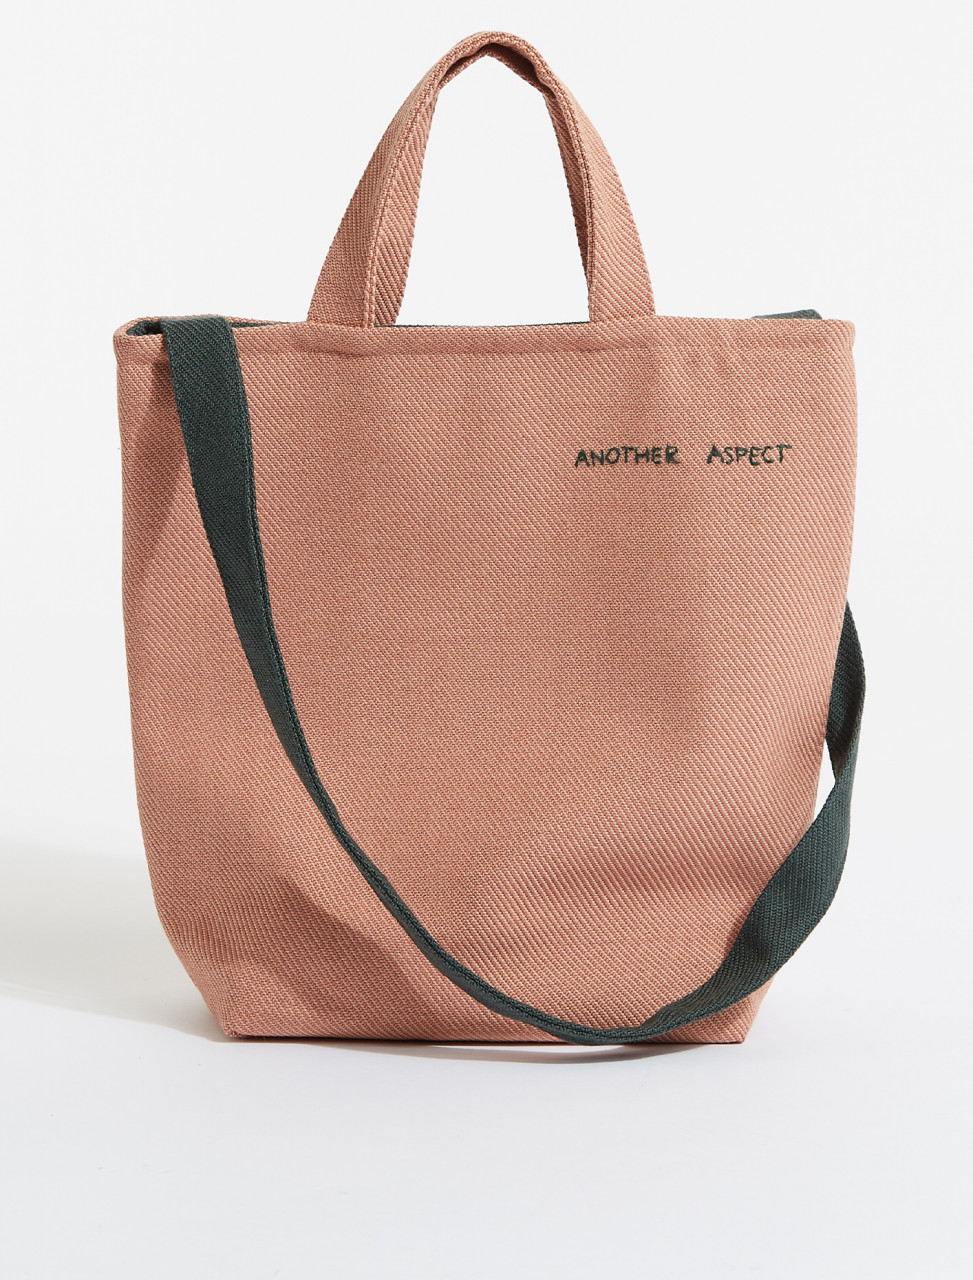 909090-900 ANOTHER ASPECT ANOTHER TOTE BAG 1.0 ROSE ASH